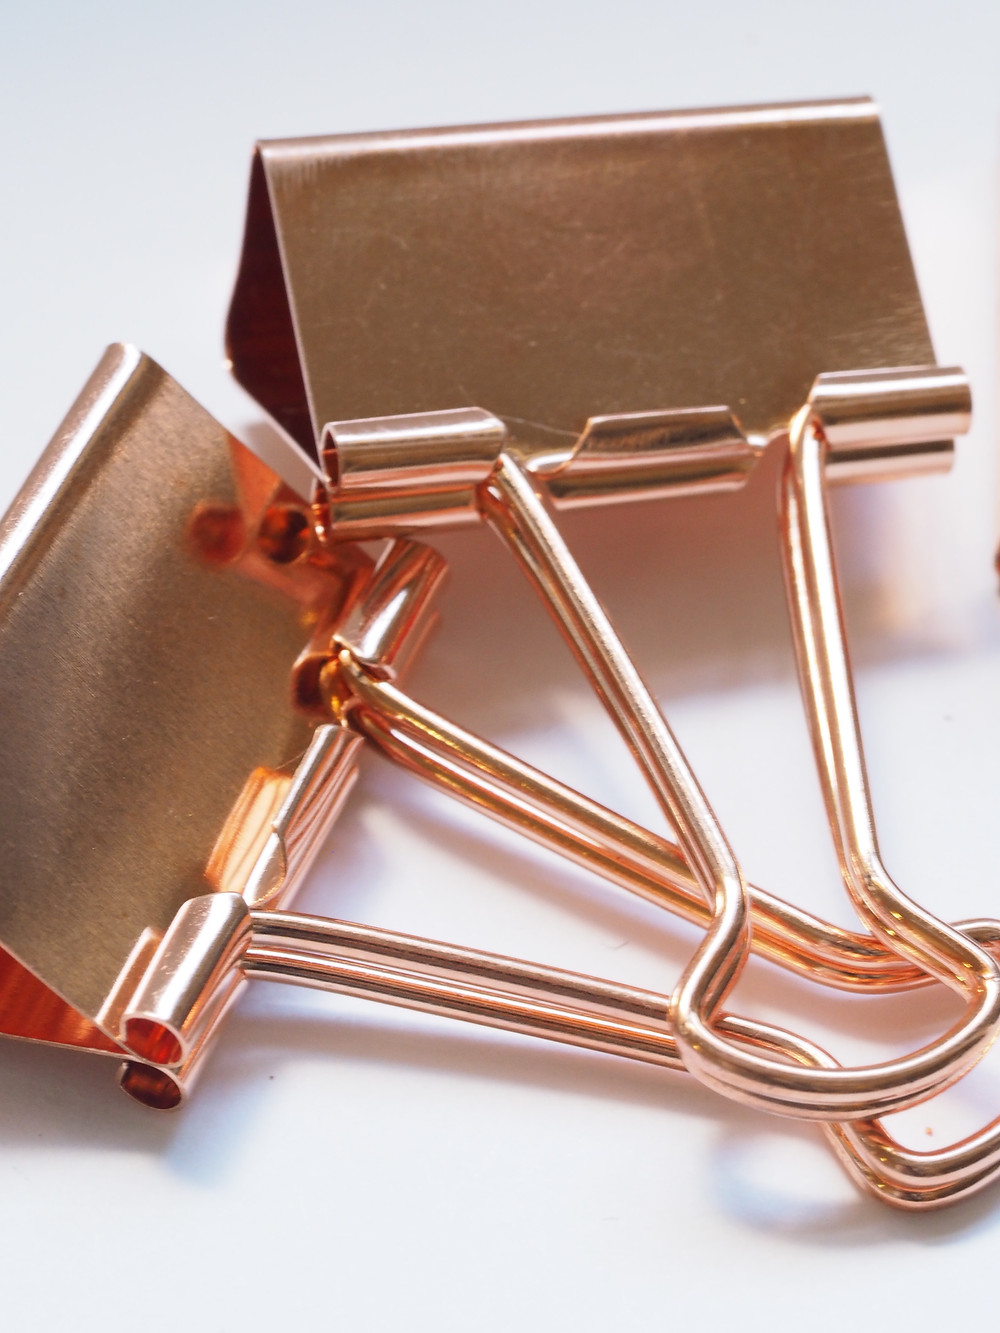 pvd coating rose gold paper clip